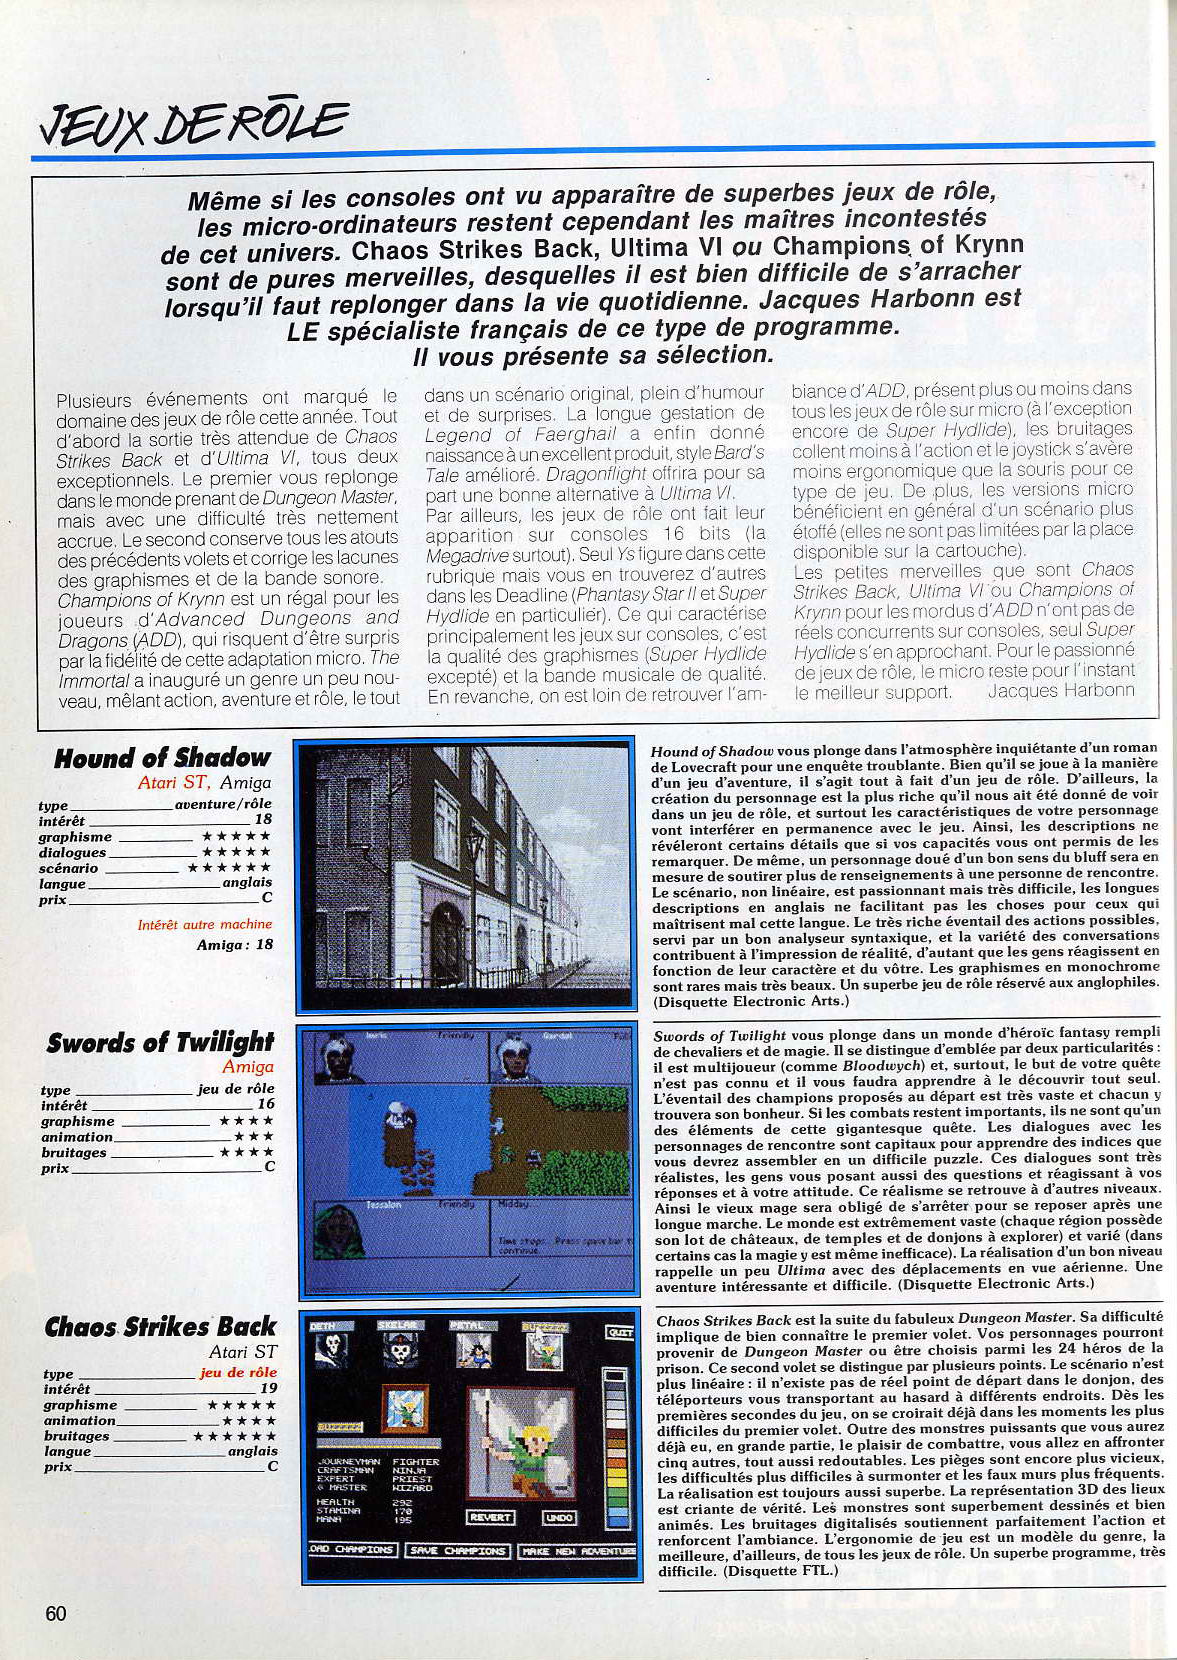 Chaos Strikes Back for Atari ST Review published in French magazine 'Tilt', Issue #85 December 1990, Page 60